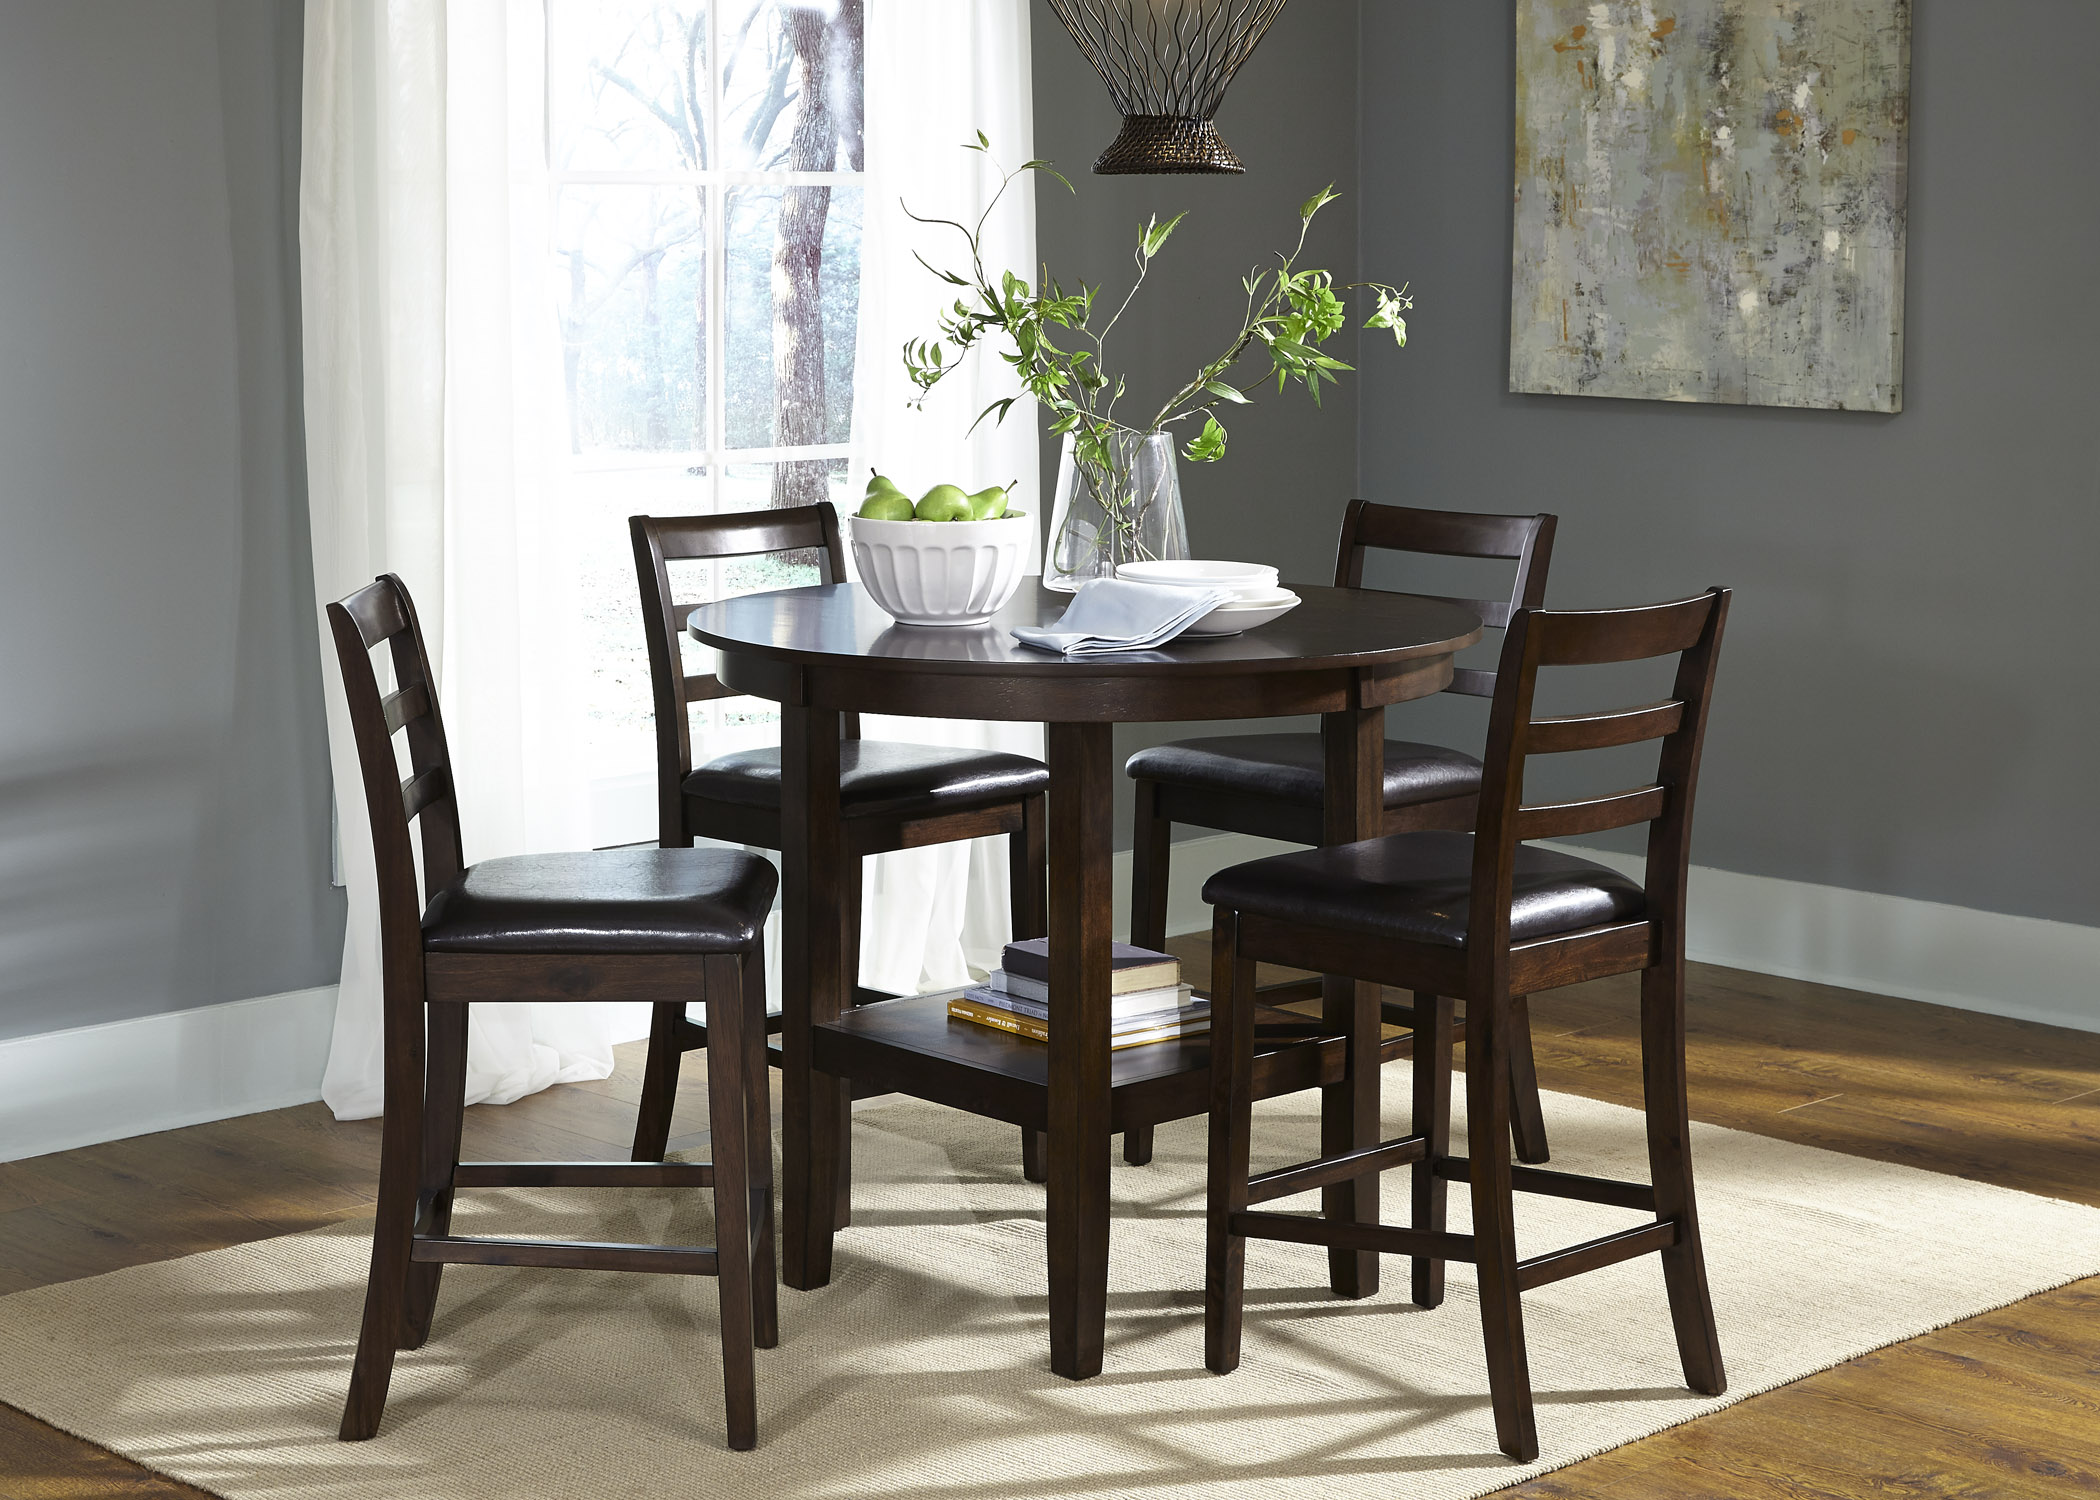 Liberty furniture bradshaw casual dining 32 cd 5pub 5 for Casual dining table and chairs